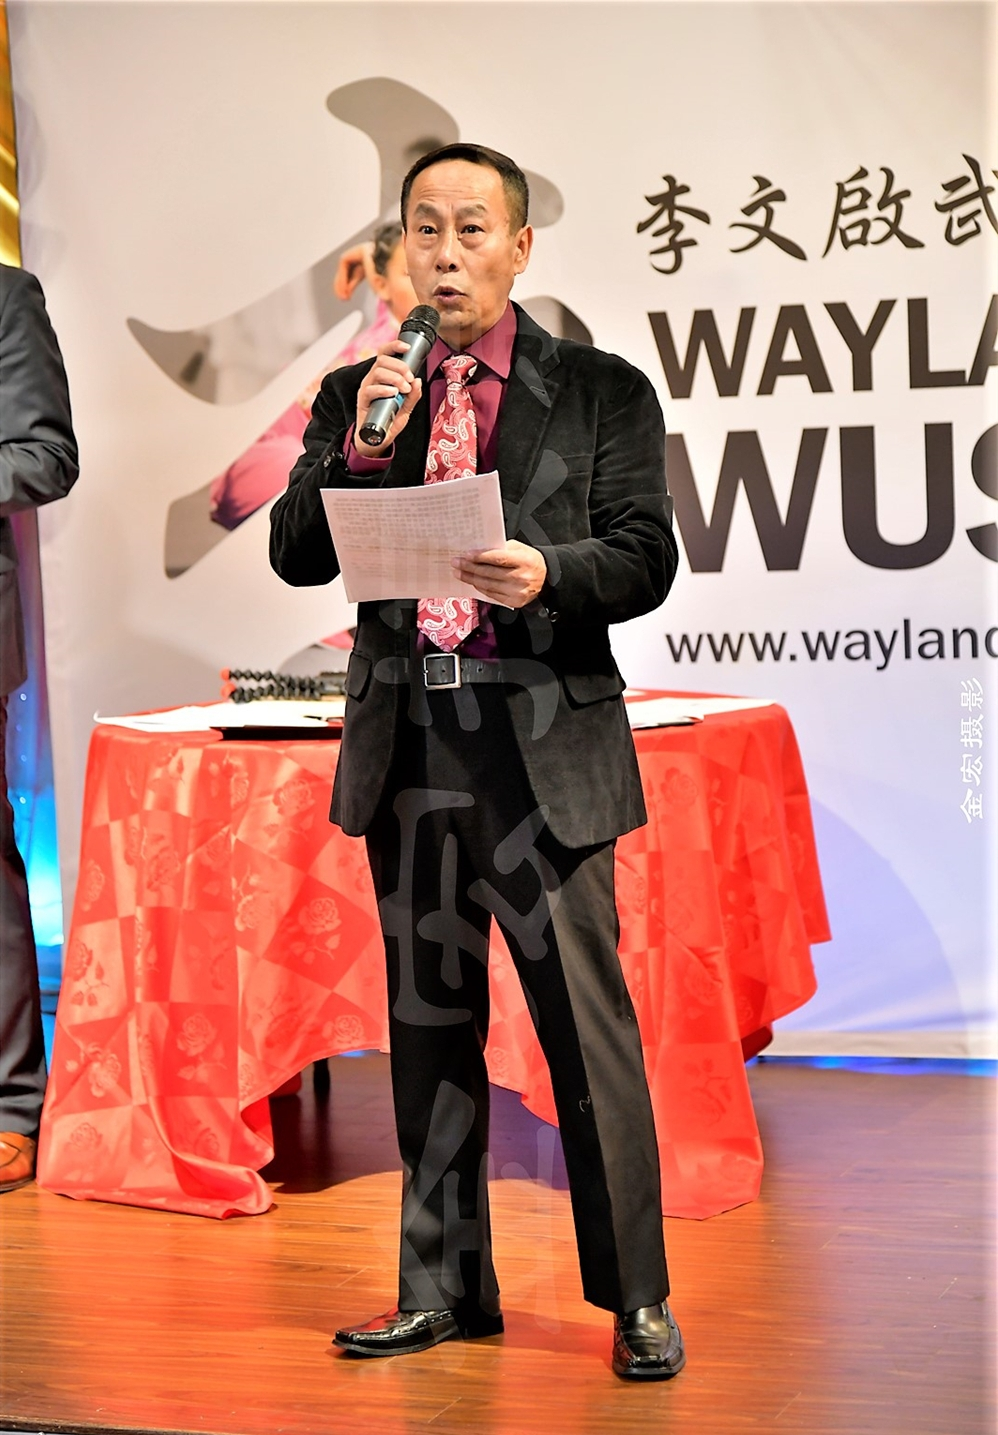 Master Li (李文启师傅) started the evening with a speech from the heart, reflecting on what he and his students have achieved over the last 20 years